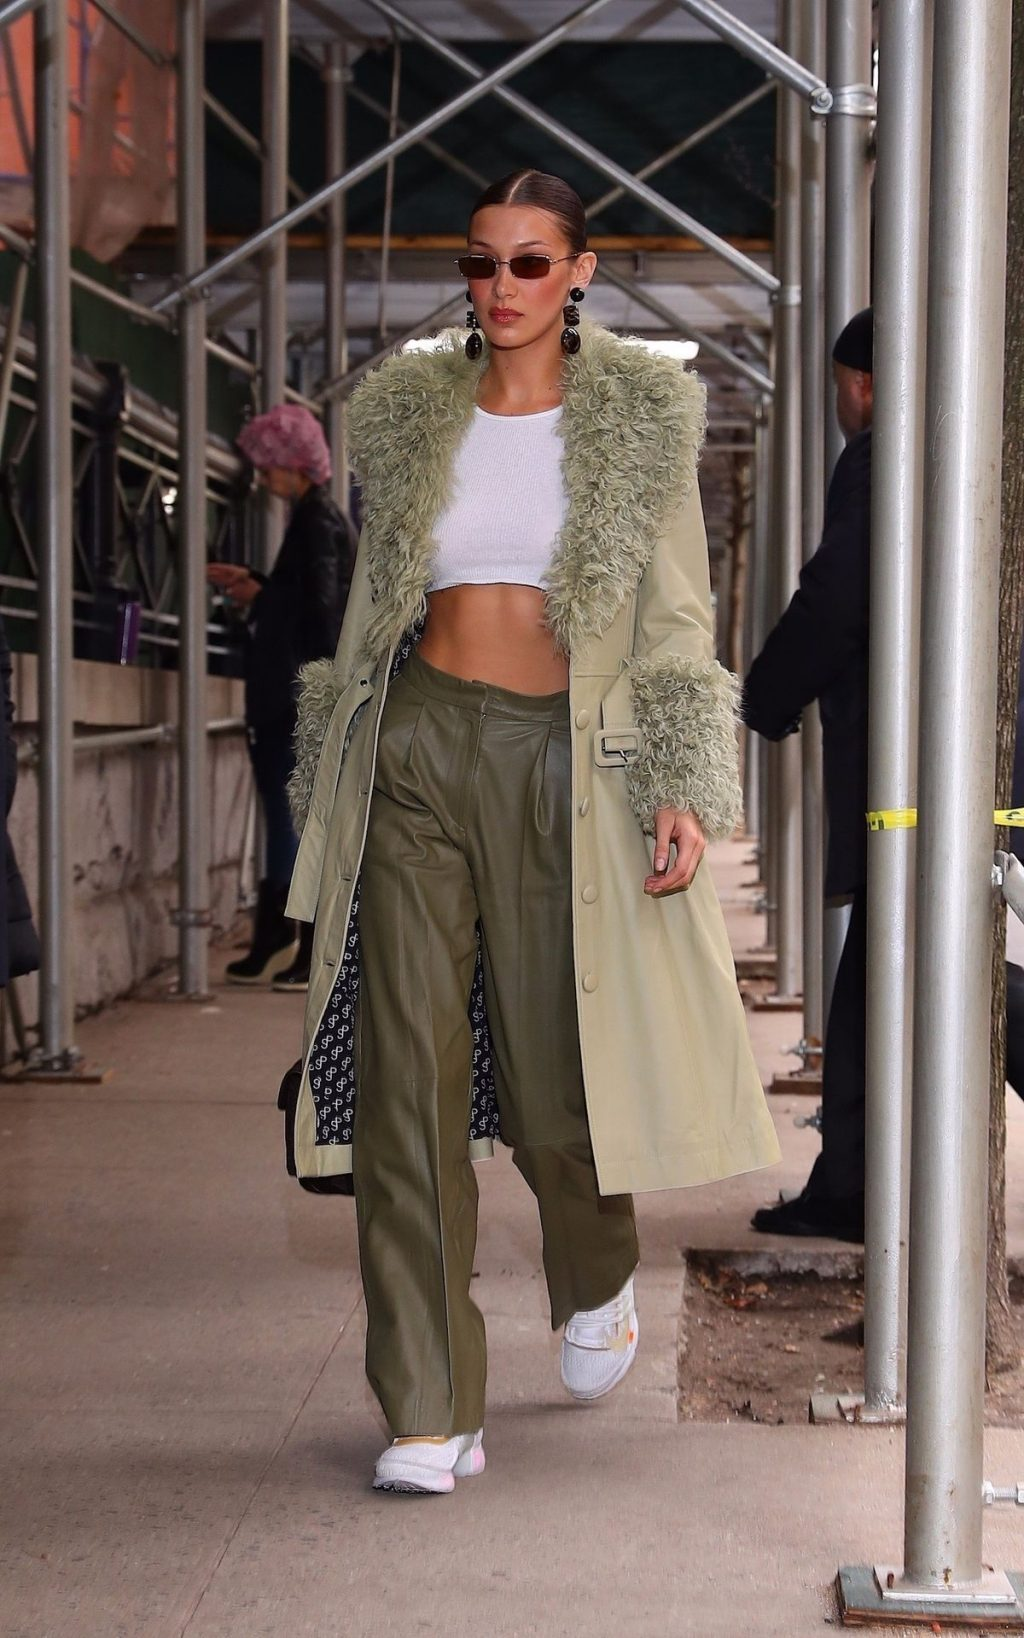 Bella Hadid See through The Fappening Blog 30 1024x1638 - Braless Bella Hadid Arrives at the Park Avenue Armory for the Marc Jacobs Fashion Show (59 Photos)